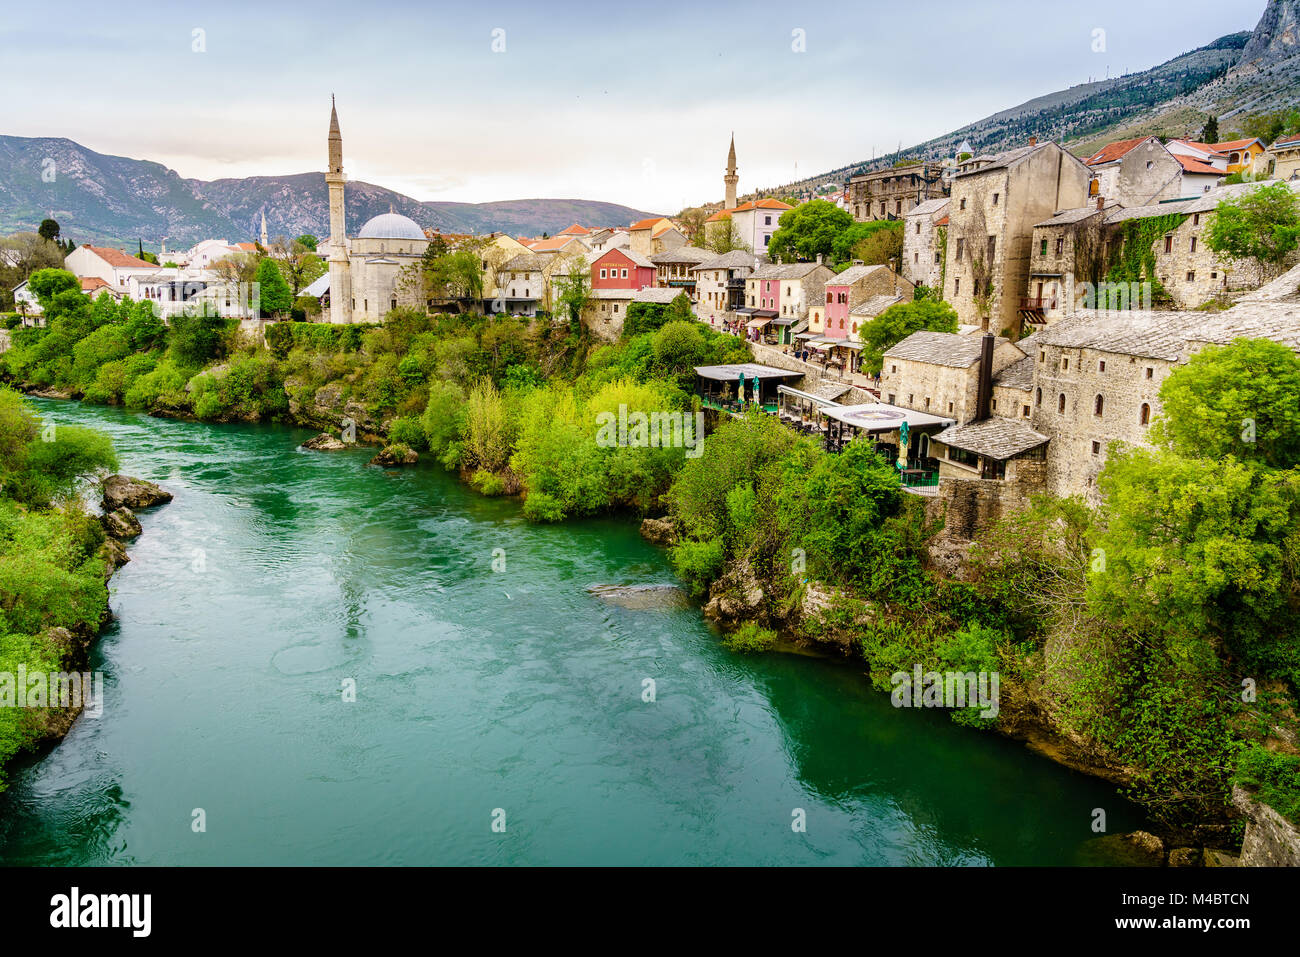 Scenic view of the city of Mostar from the bidge across the Neretva River, Bosnia - Stock Image